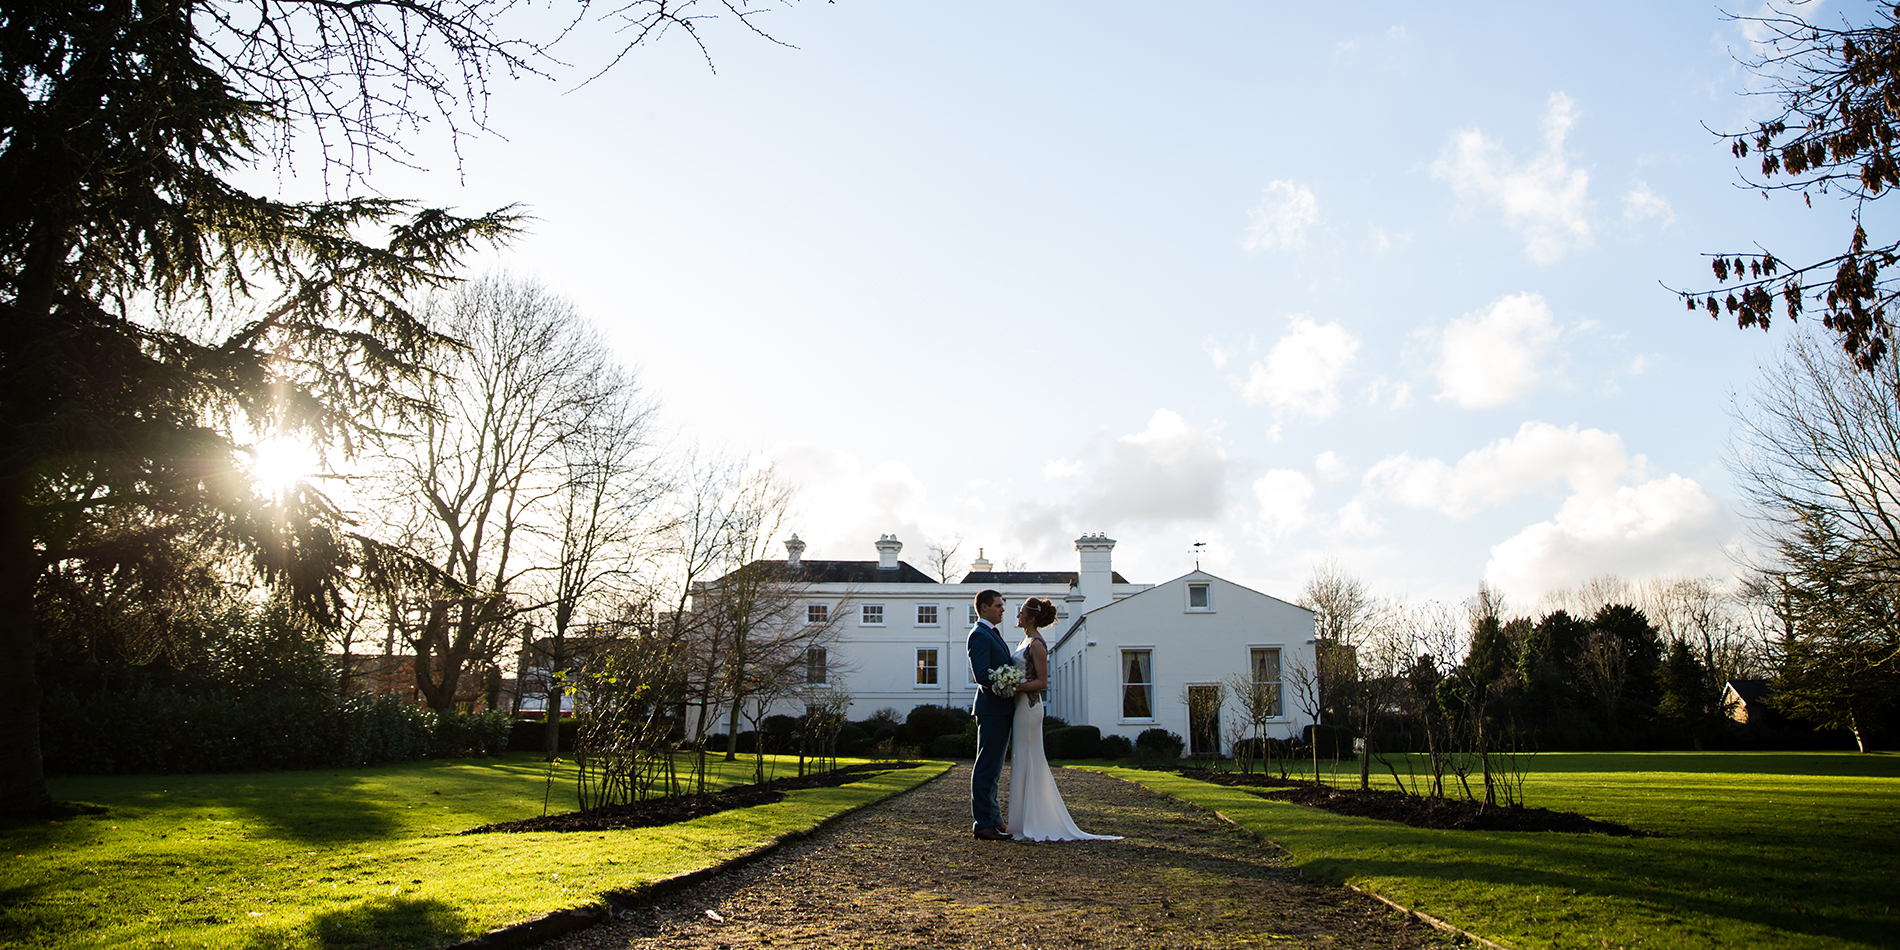 Liz and Andrew share their wedding day at Morden Hall one of the finest wedding venues in London